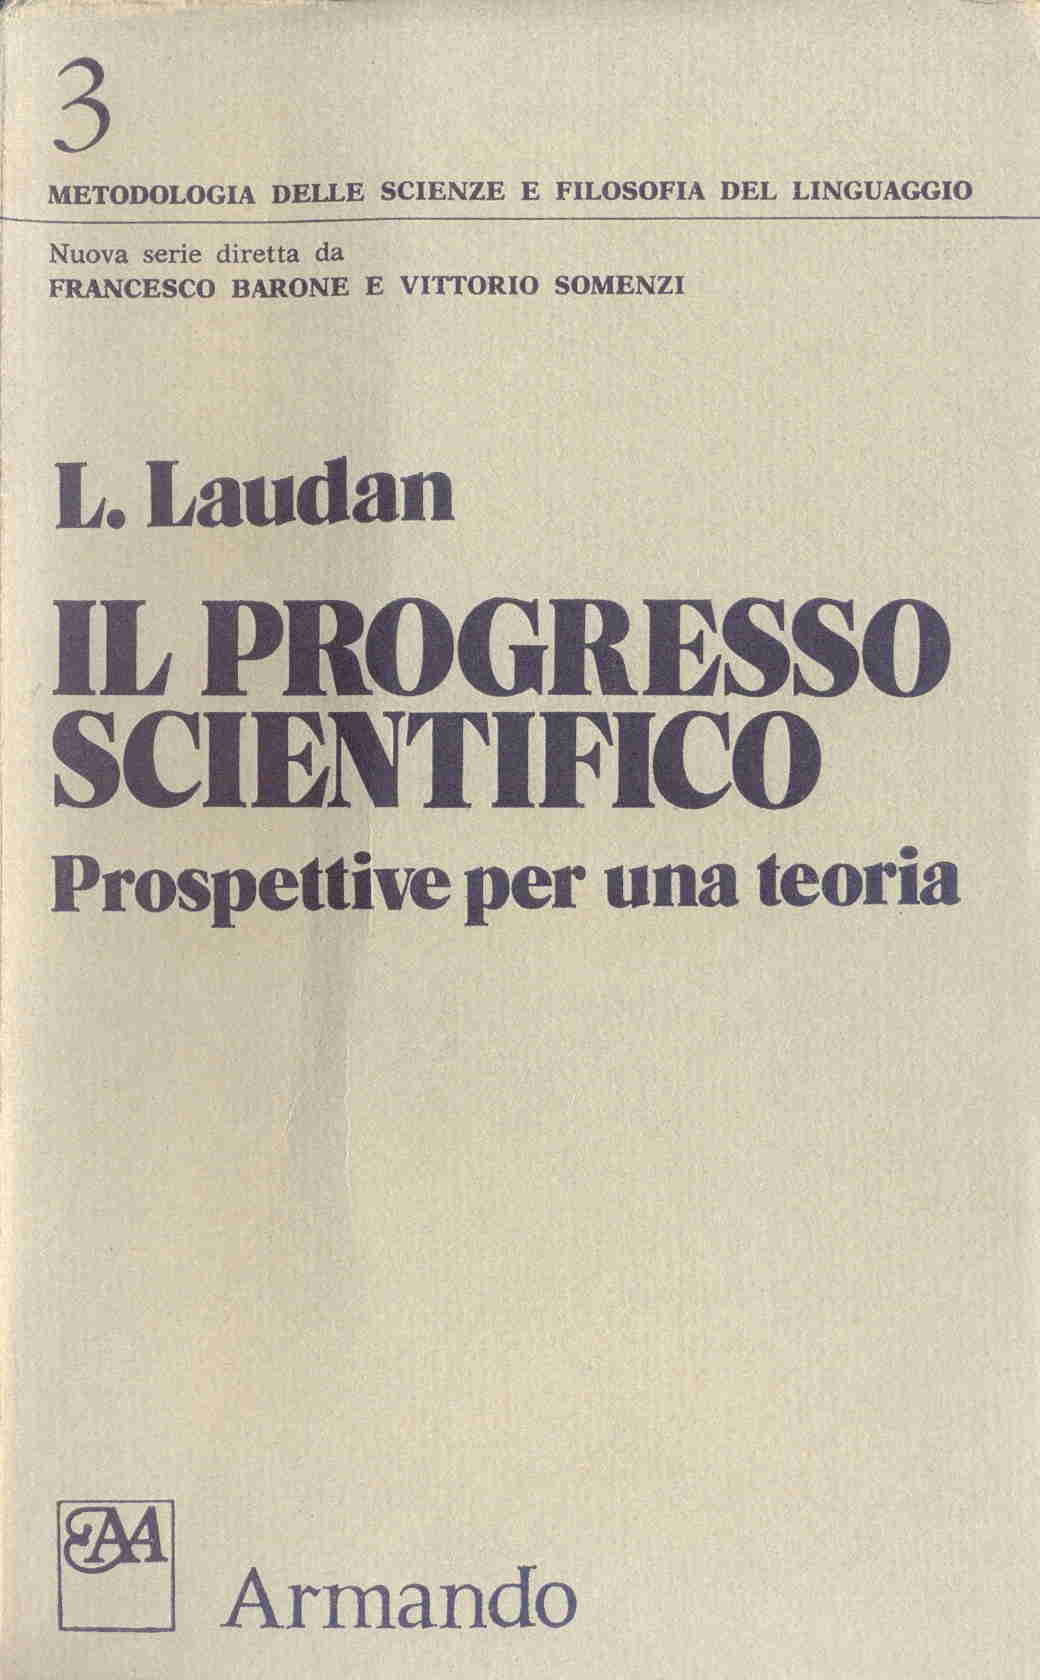 Il progresso scientifico